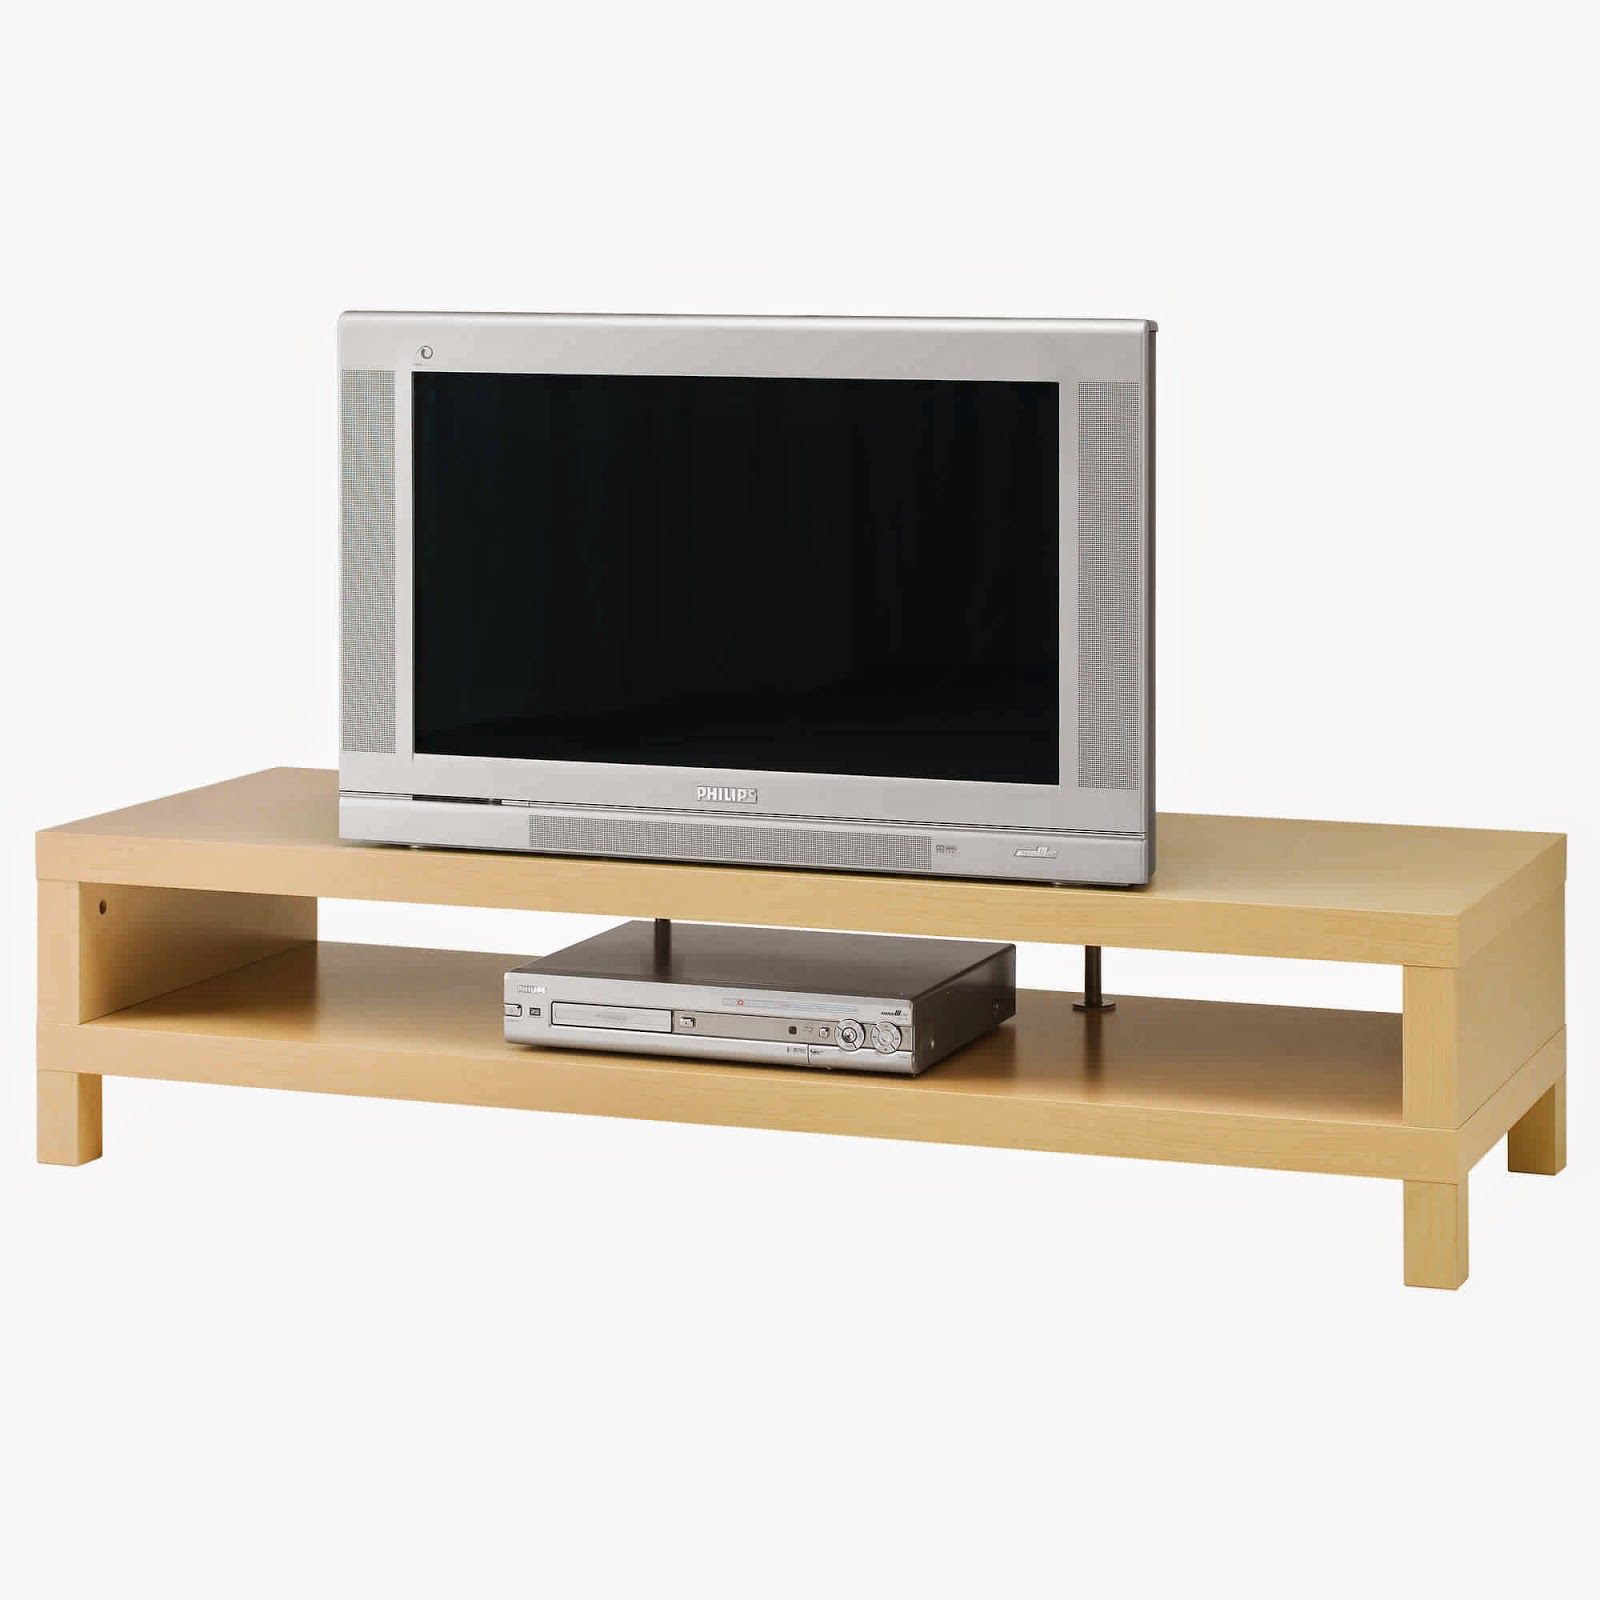 Meuble tv ikea meuble tv for Meuble 6 cases ikea